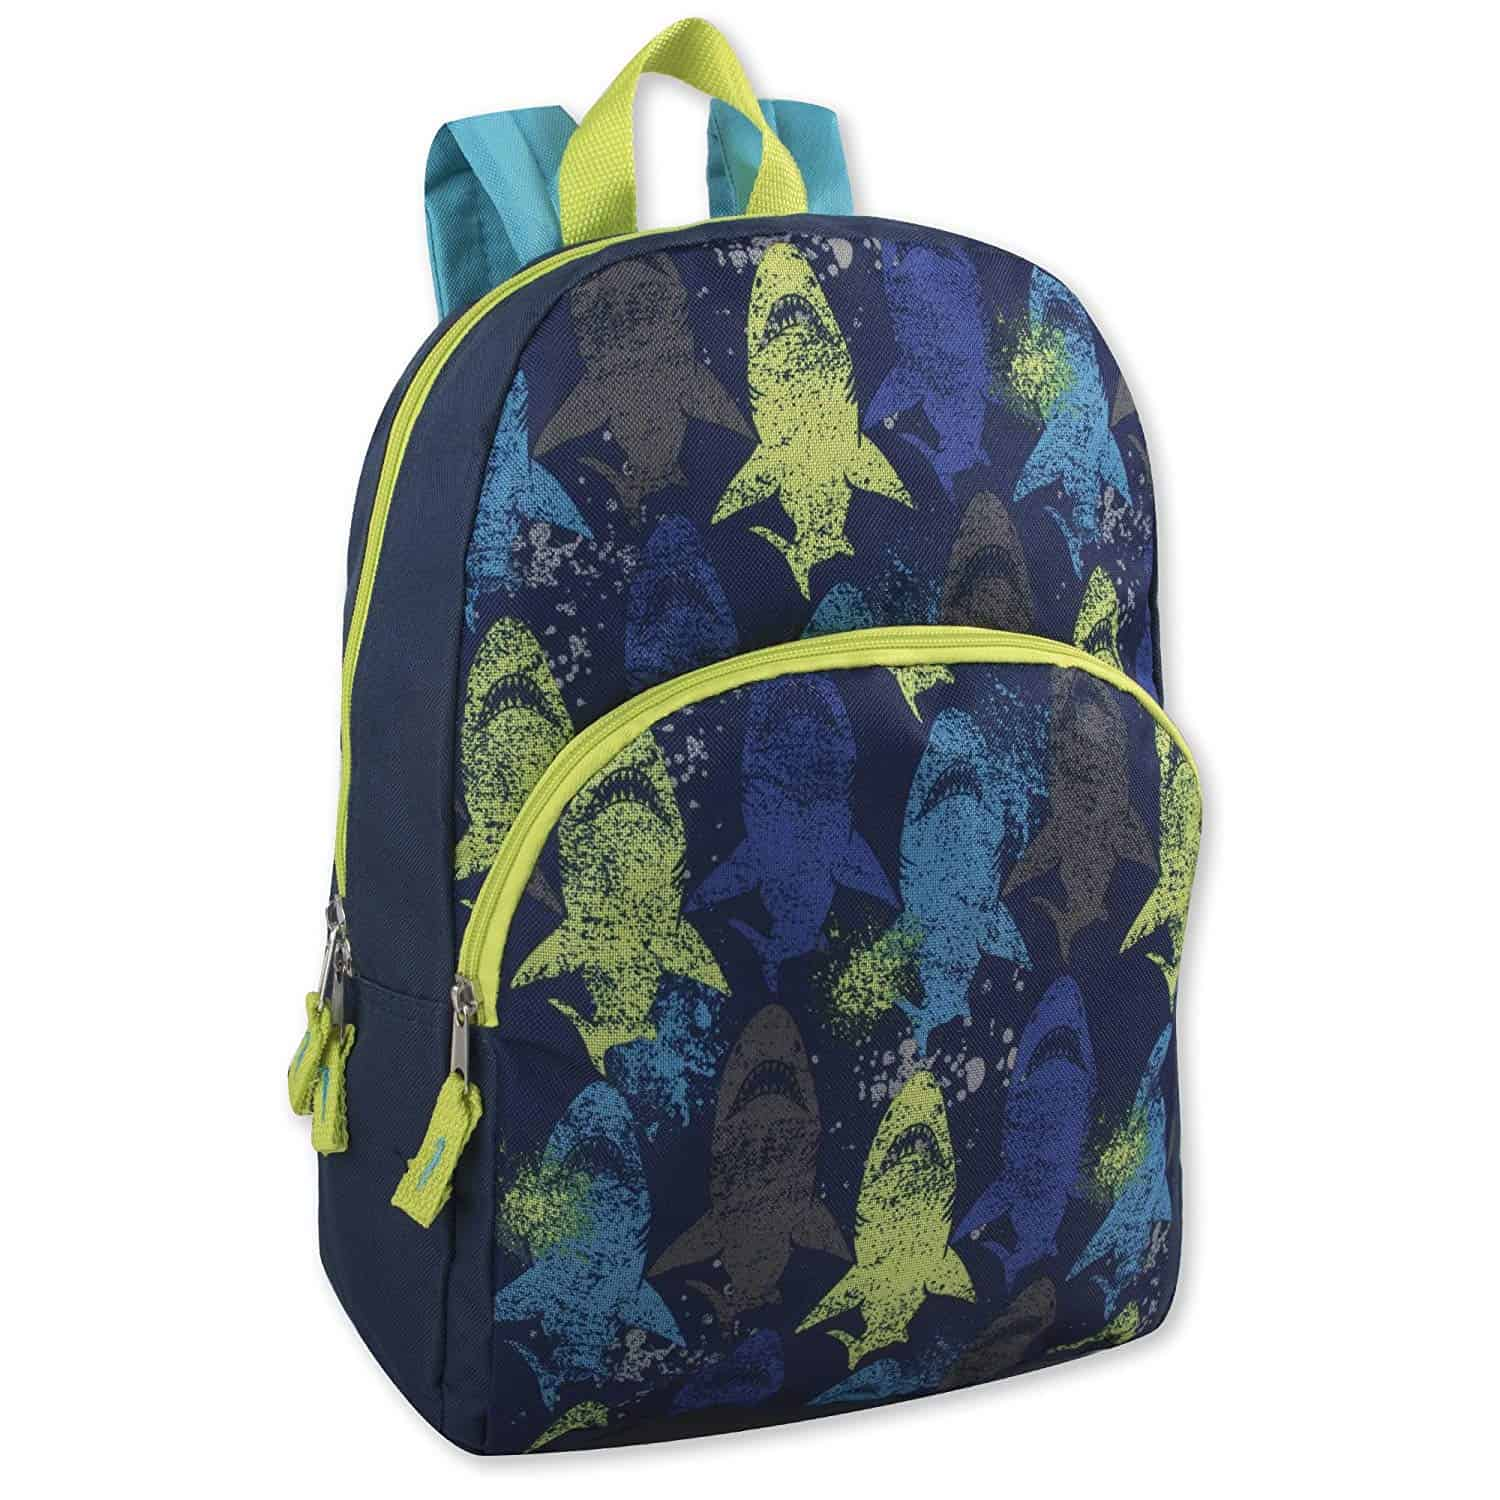 Backpack - Kids Travel Accessories